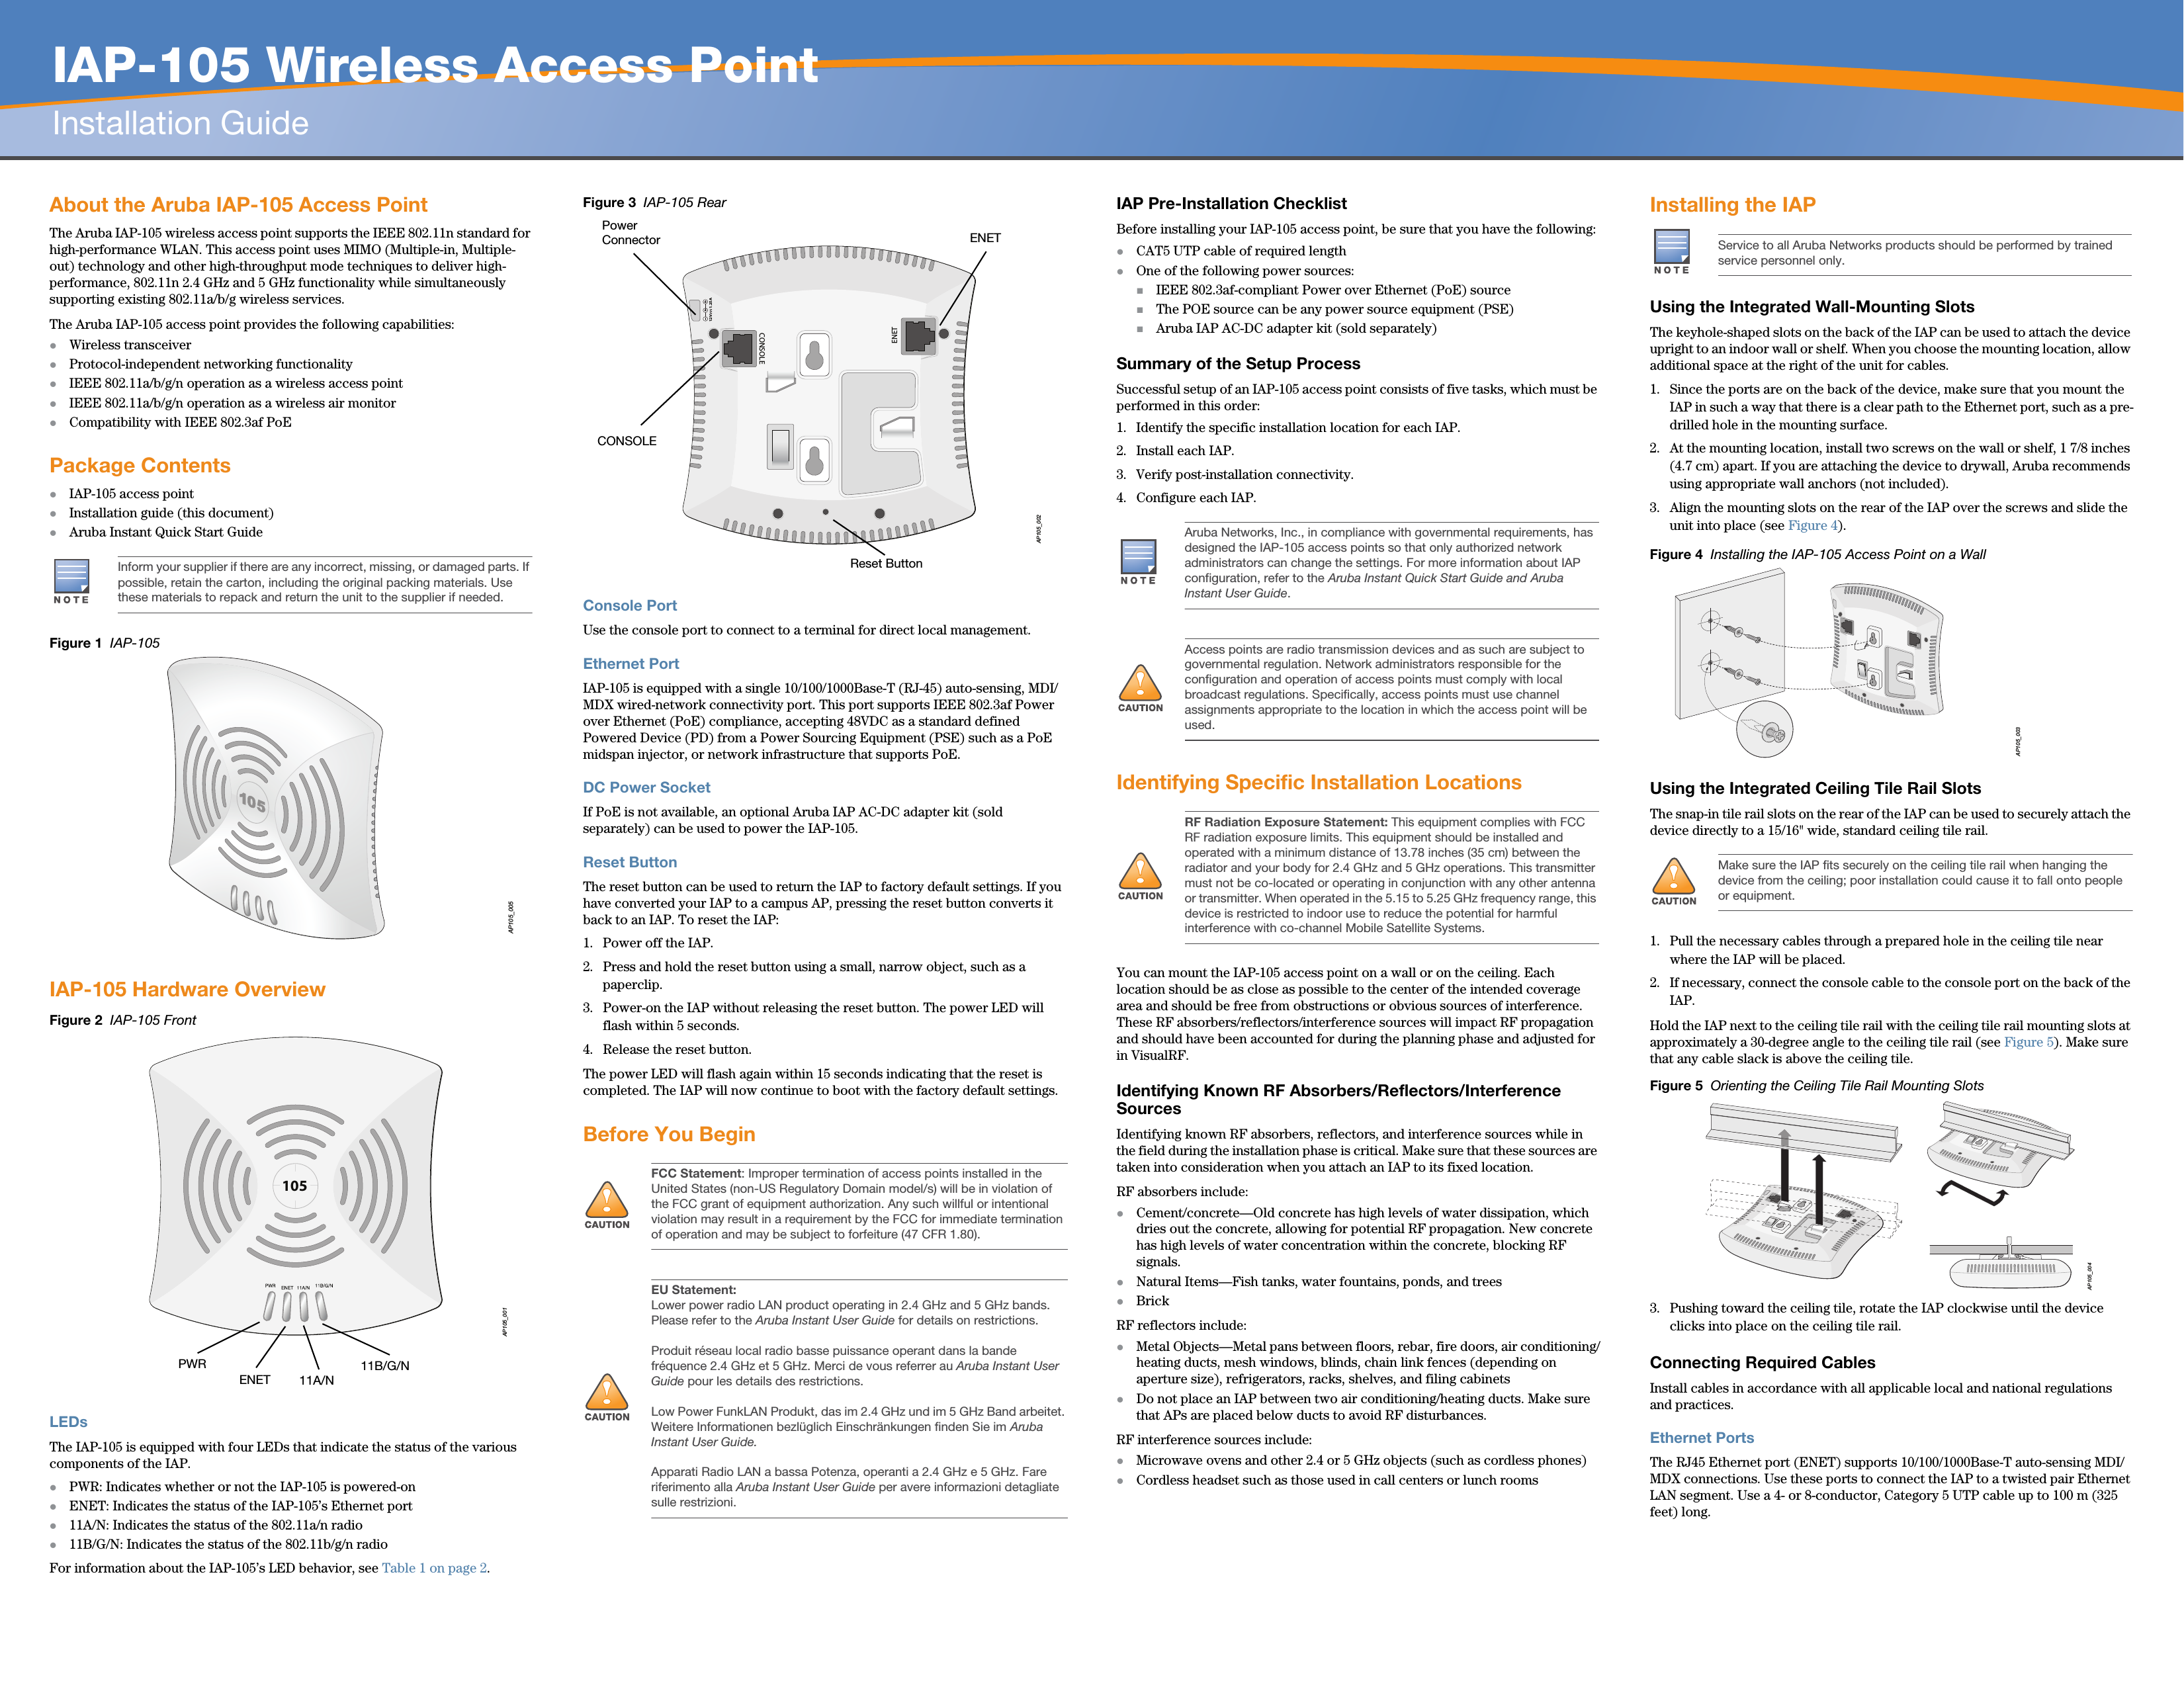 ap-105 wireless access point installation guide